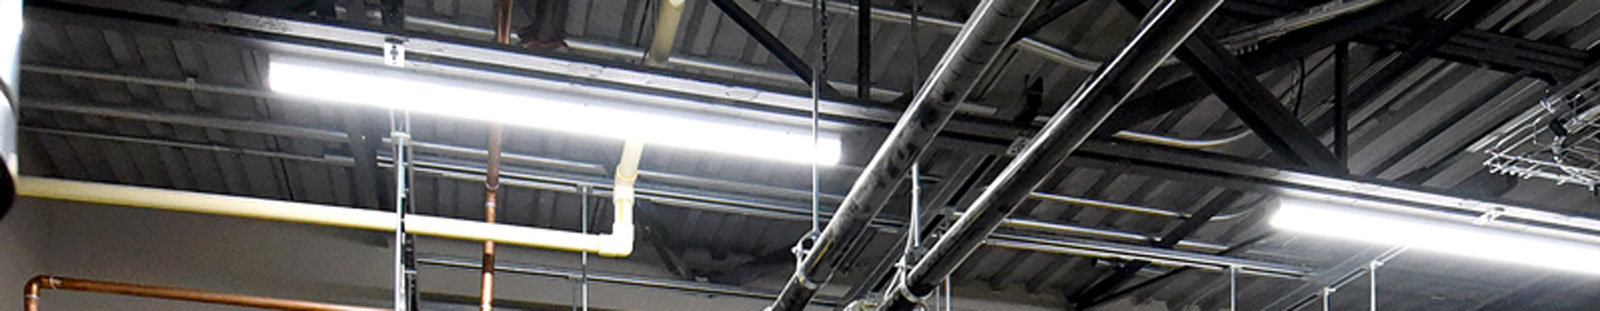 erb-transport-LED-mechanical-room-lighting